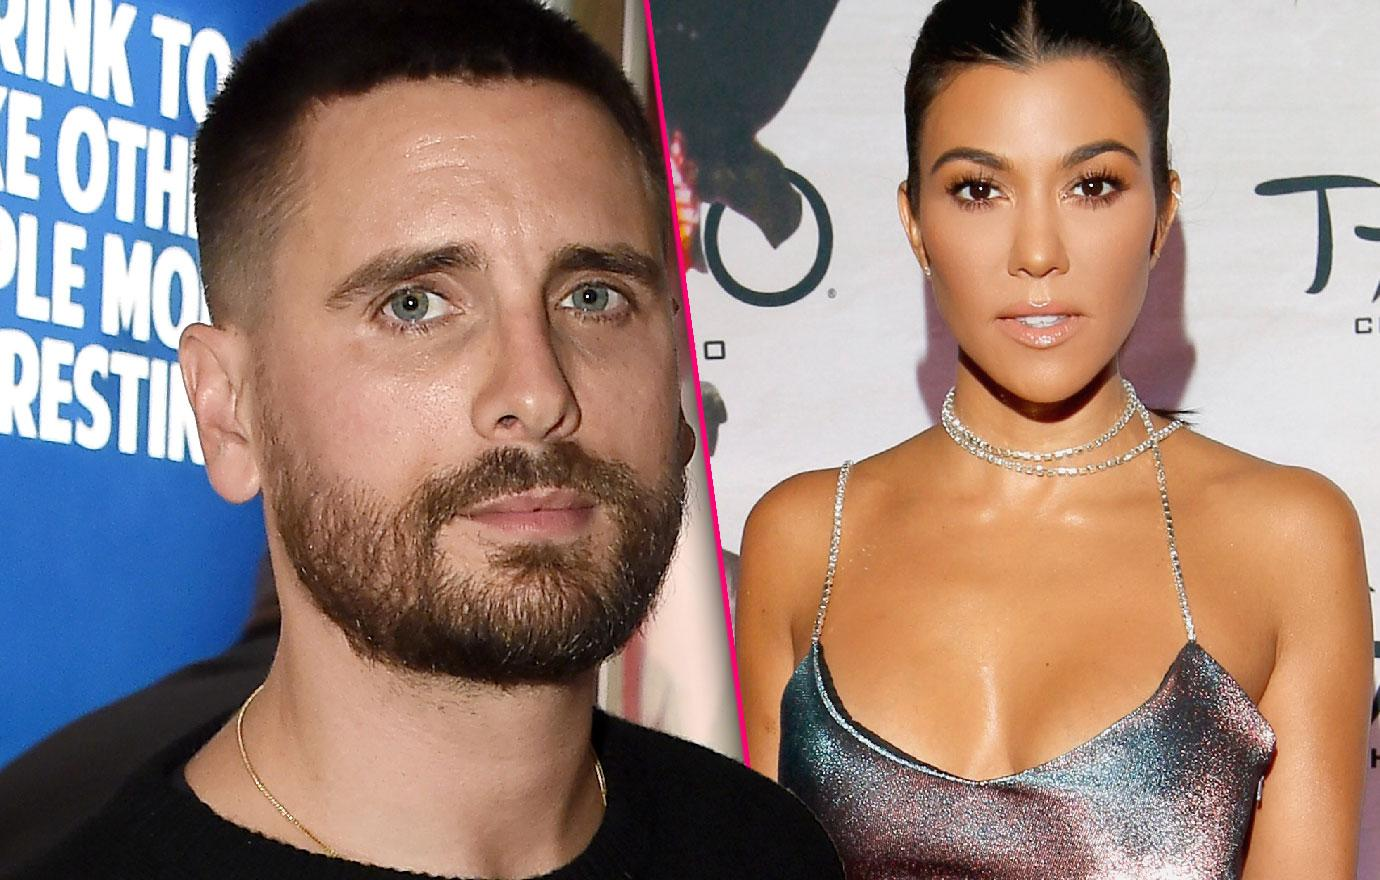 Kourtney And Scott Reconciliation On Bali Family Trip Together